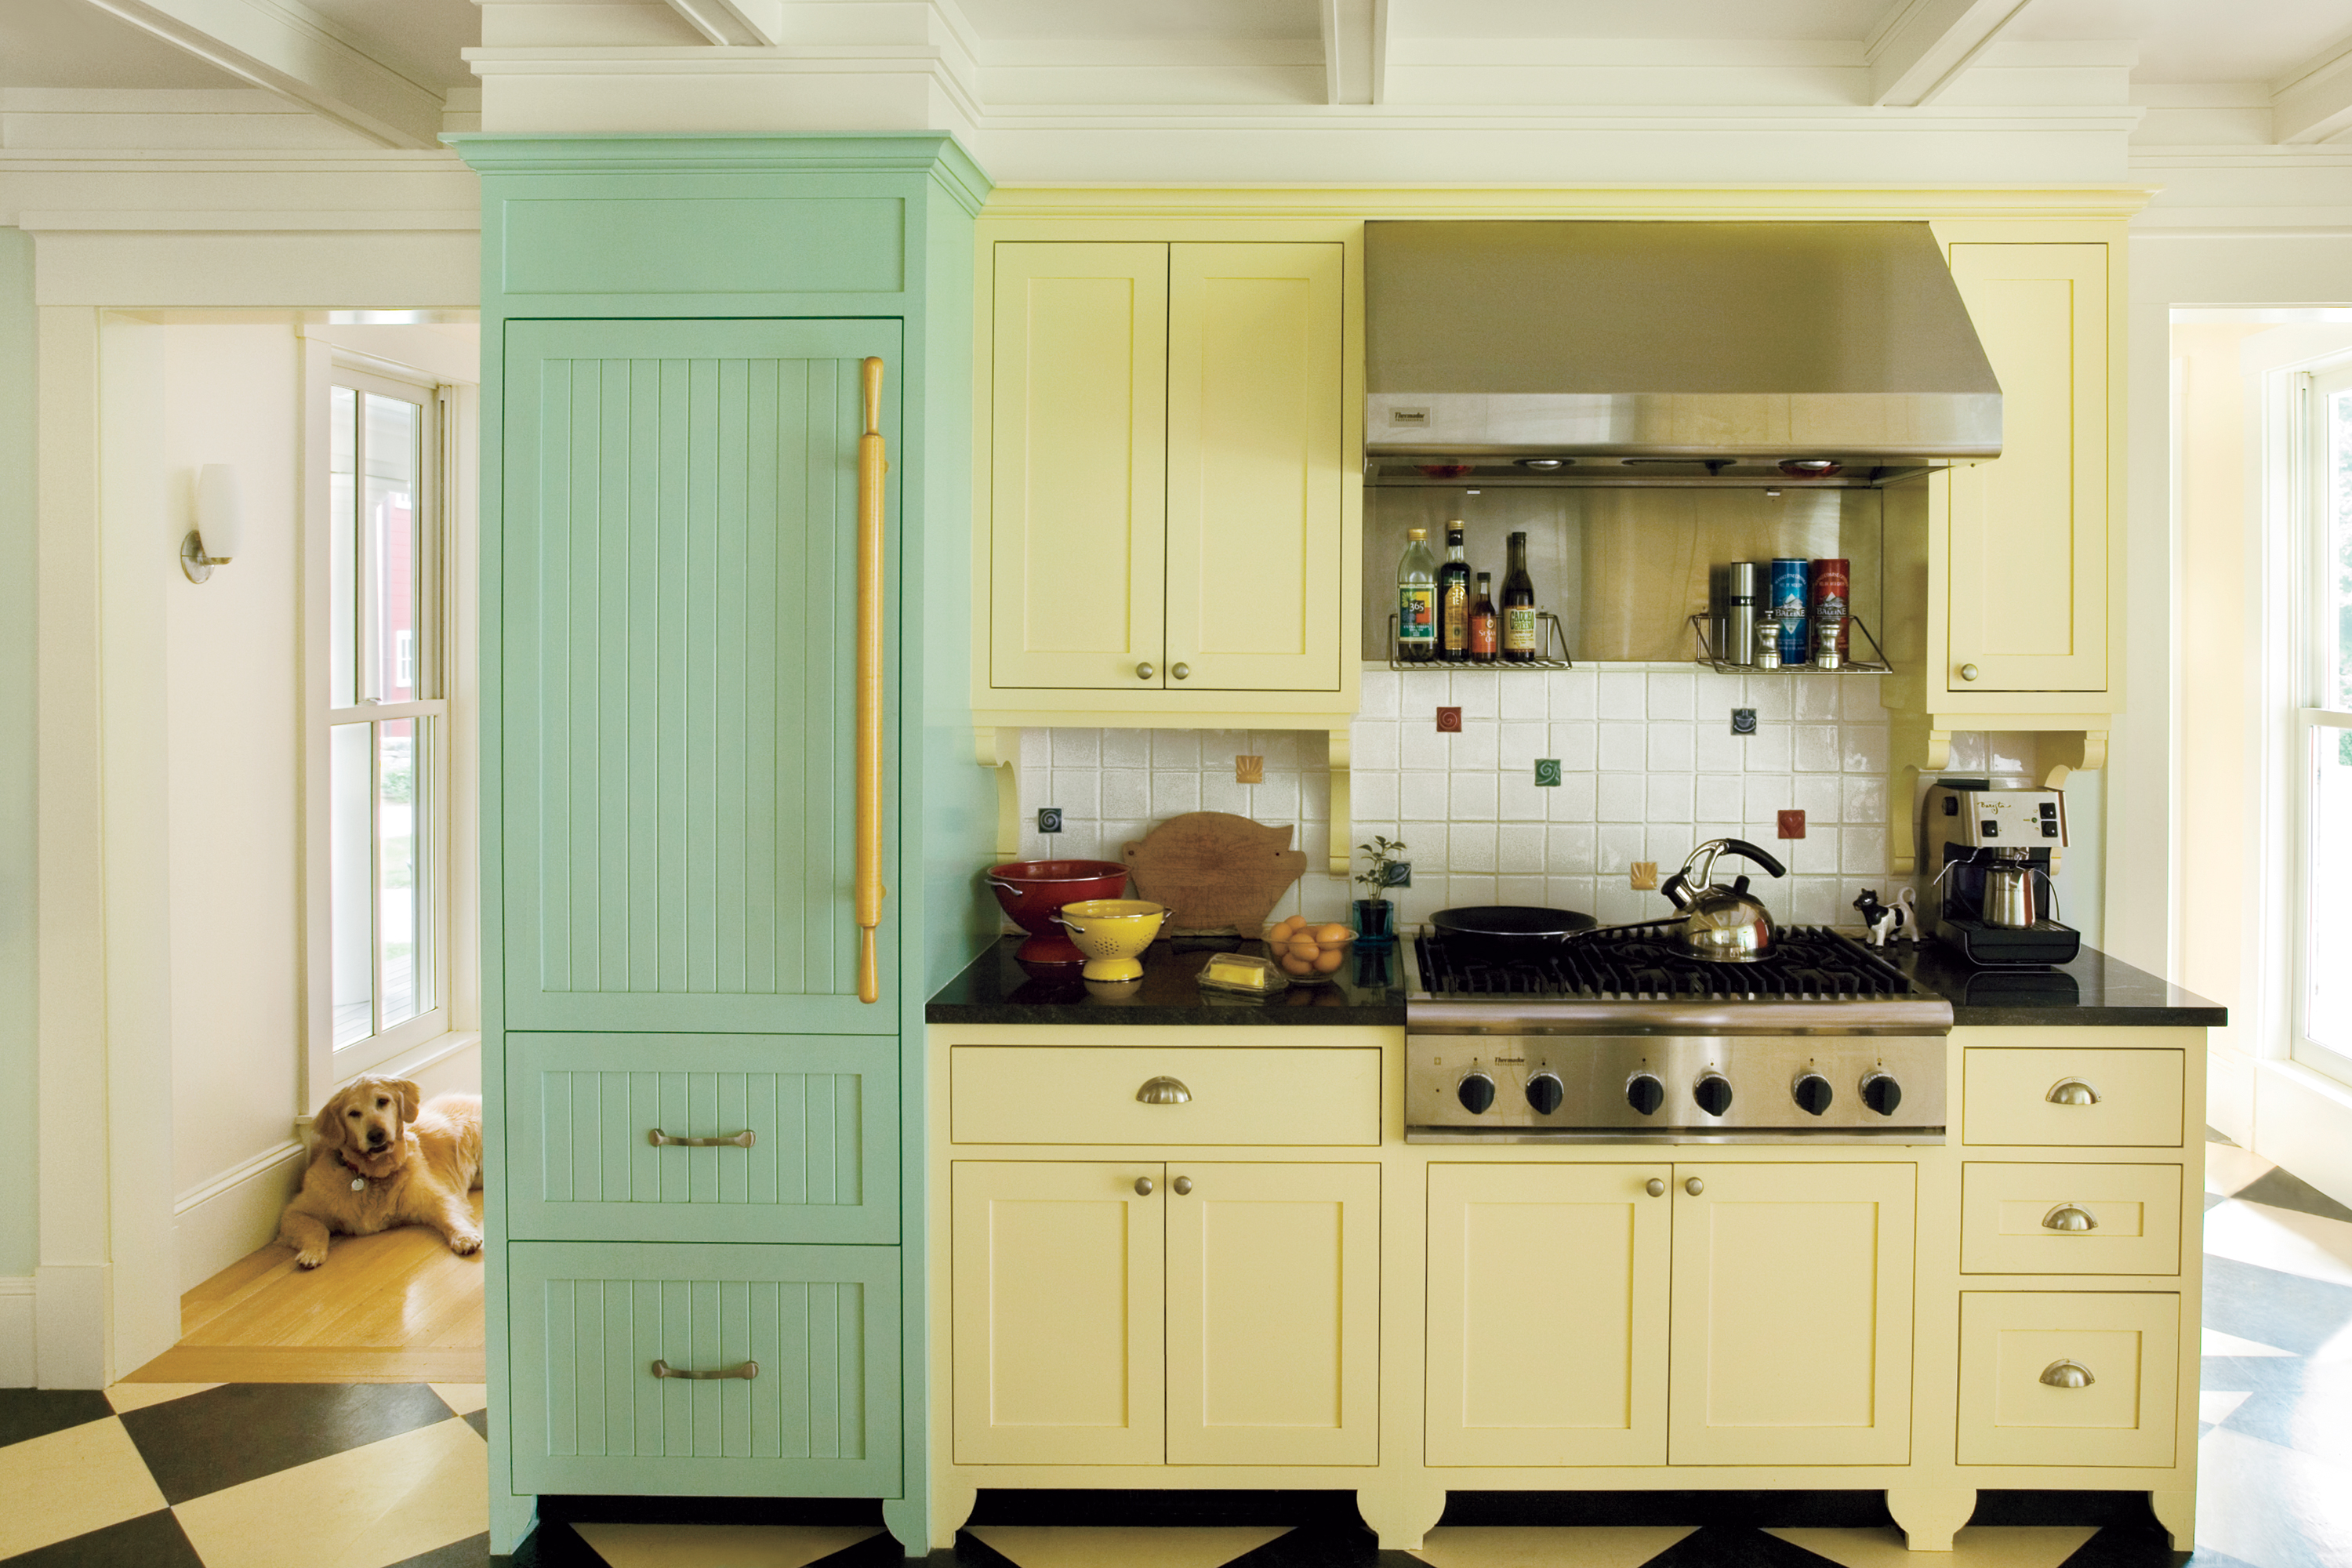 Tall green cupboard next to soft yellow kitchen cabinet and drawers.